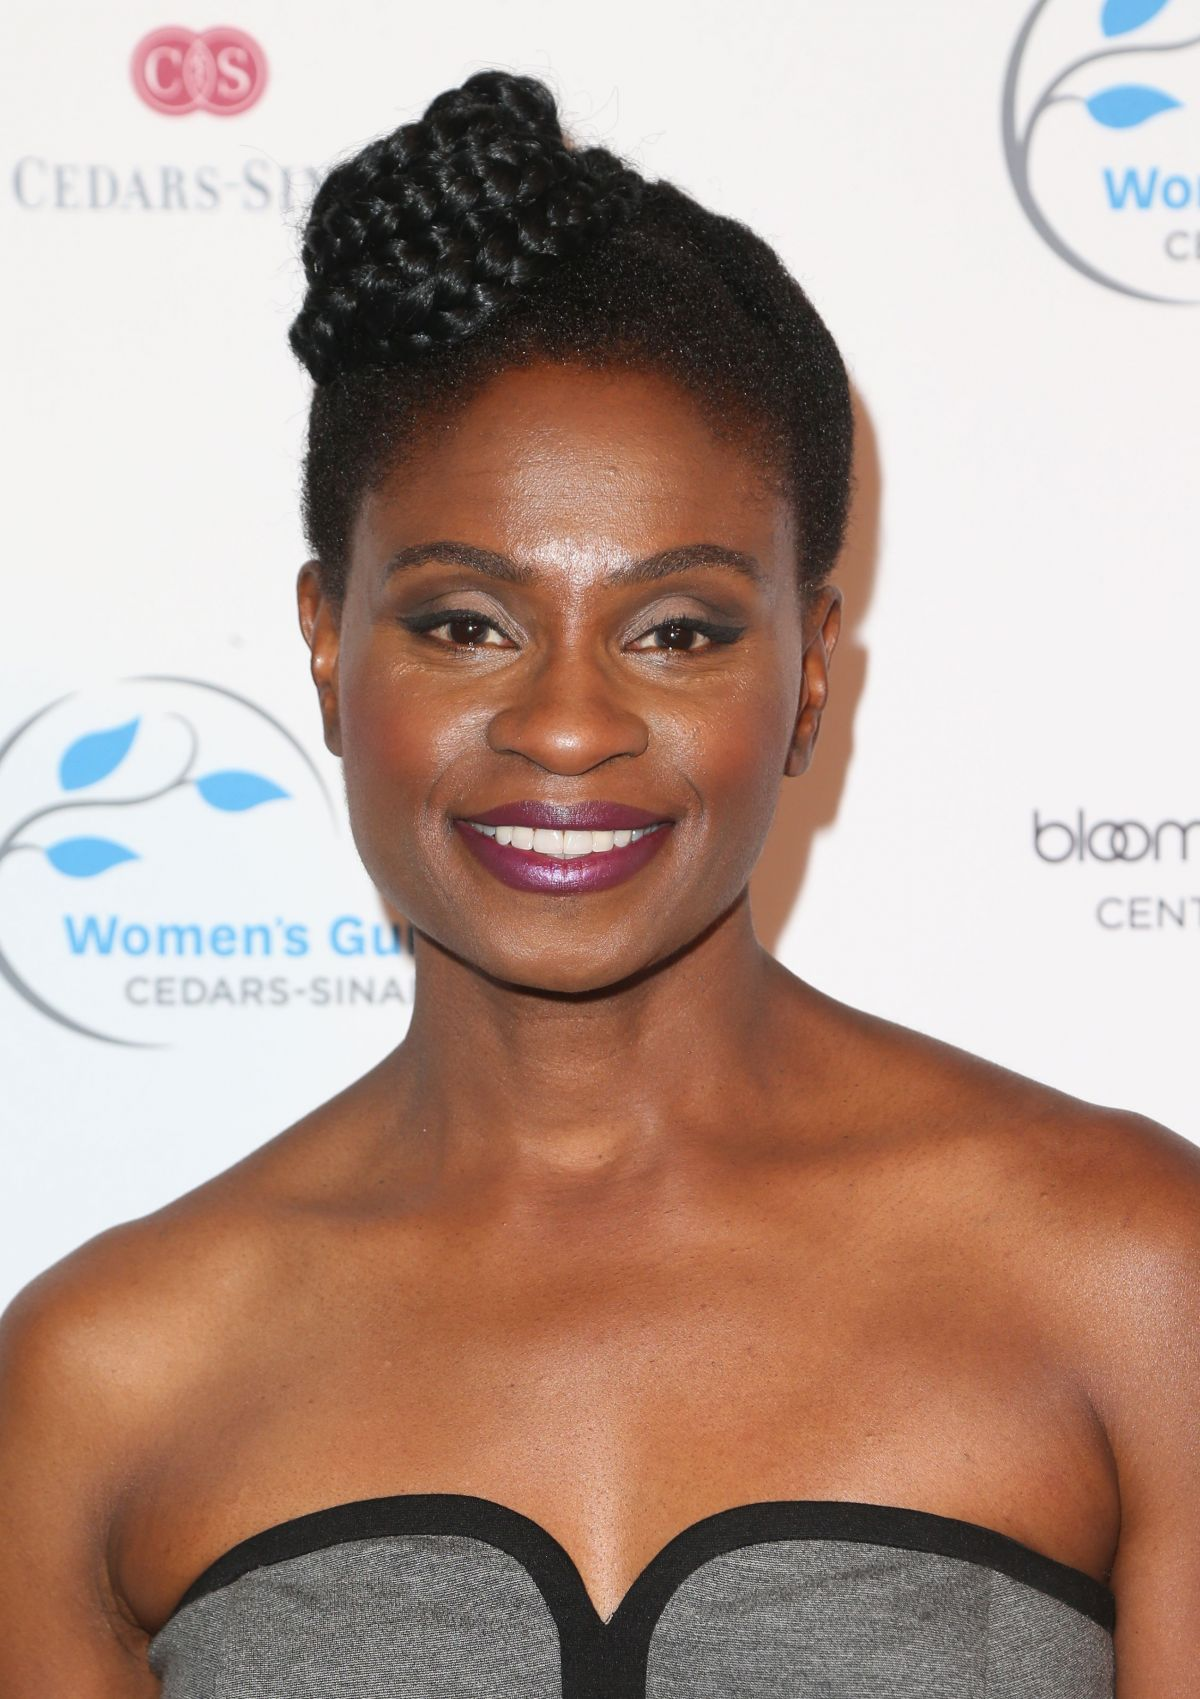 ADINA PORTER at Women's Guild Cedars Sinai Annual Spring Luncheon in Los Angeles 04/20/2017   adina-porter-at-women-s-guild-cedars-sinai-annual-spring-luncheon-in-los-angeles-04-20-2017_3